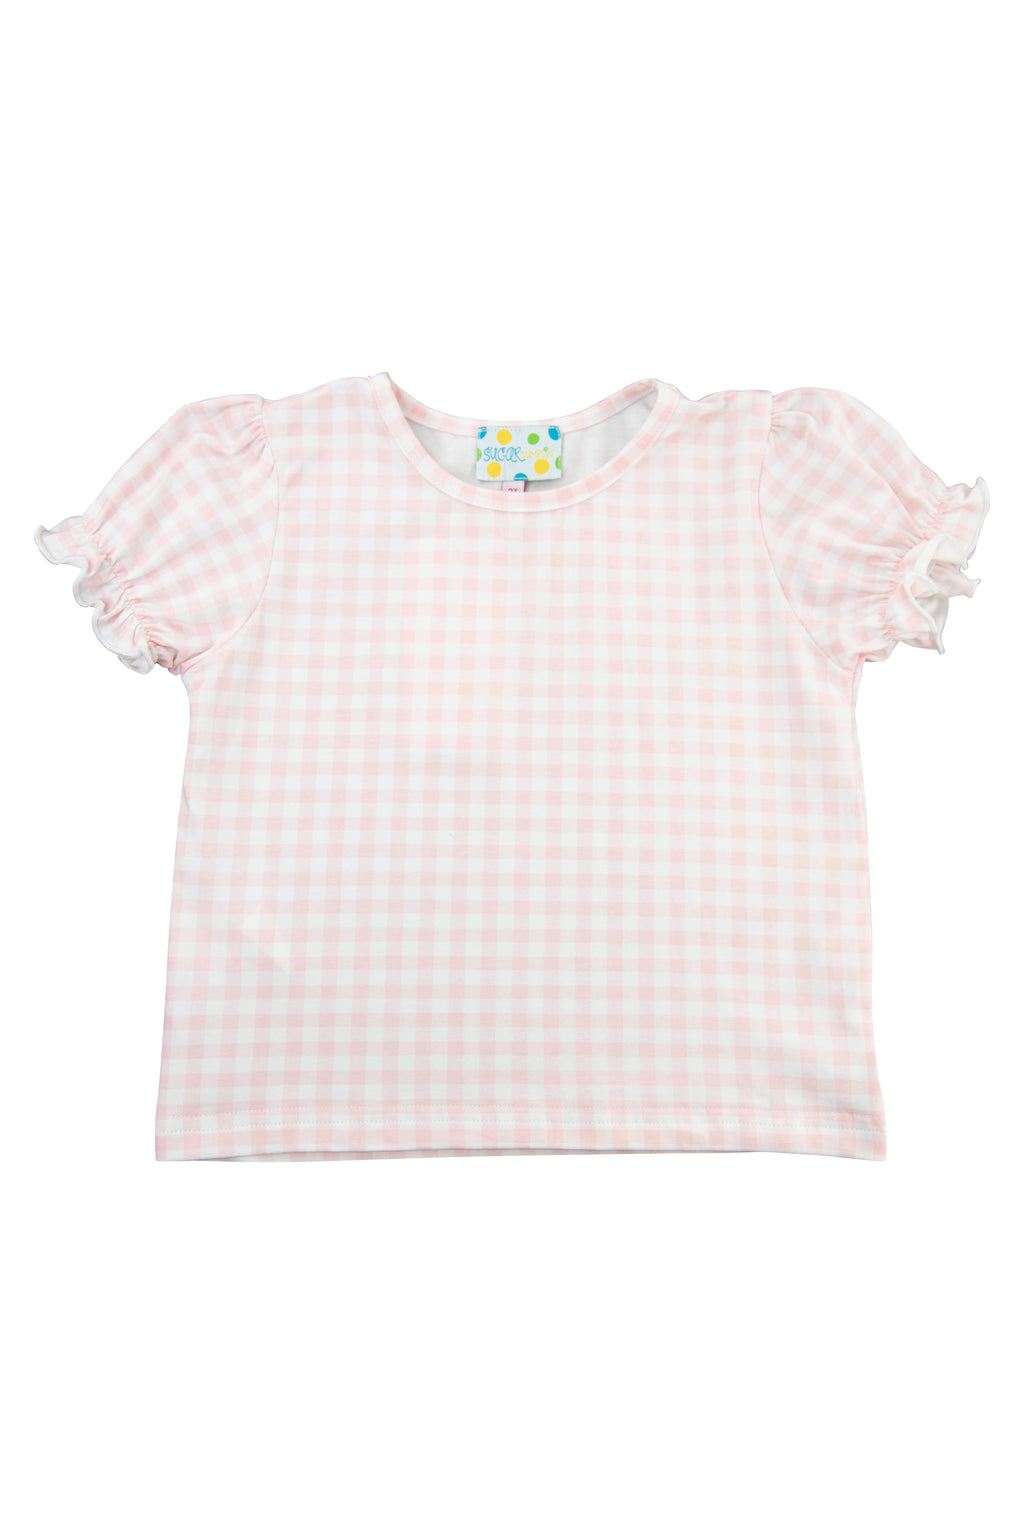 Girls Pink Gingham Shirt Only